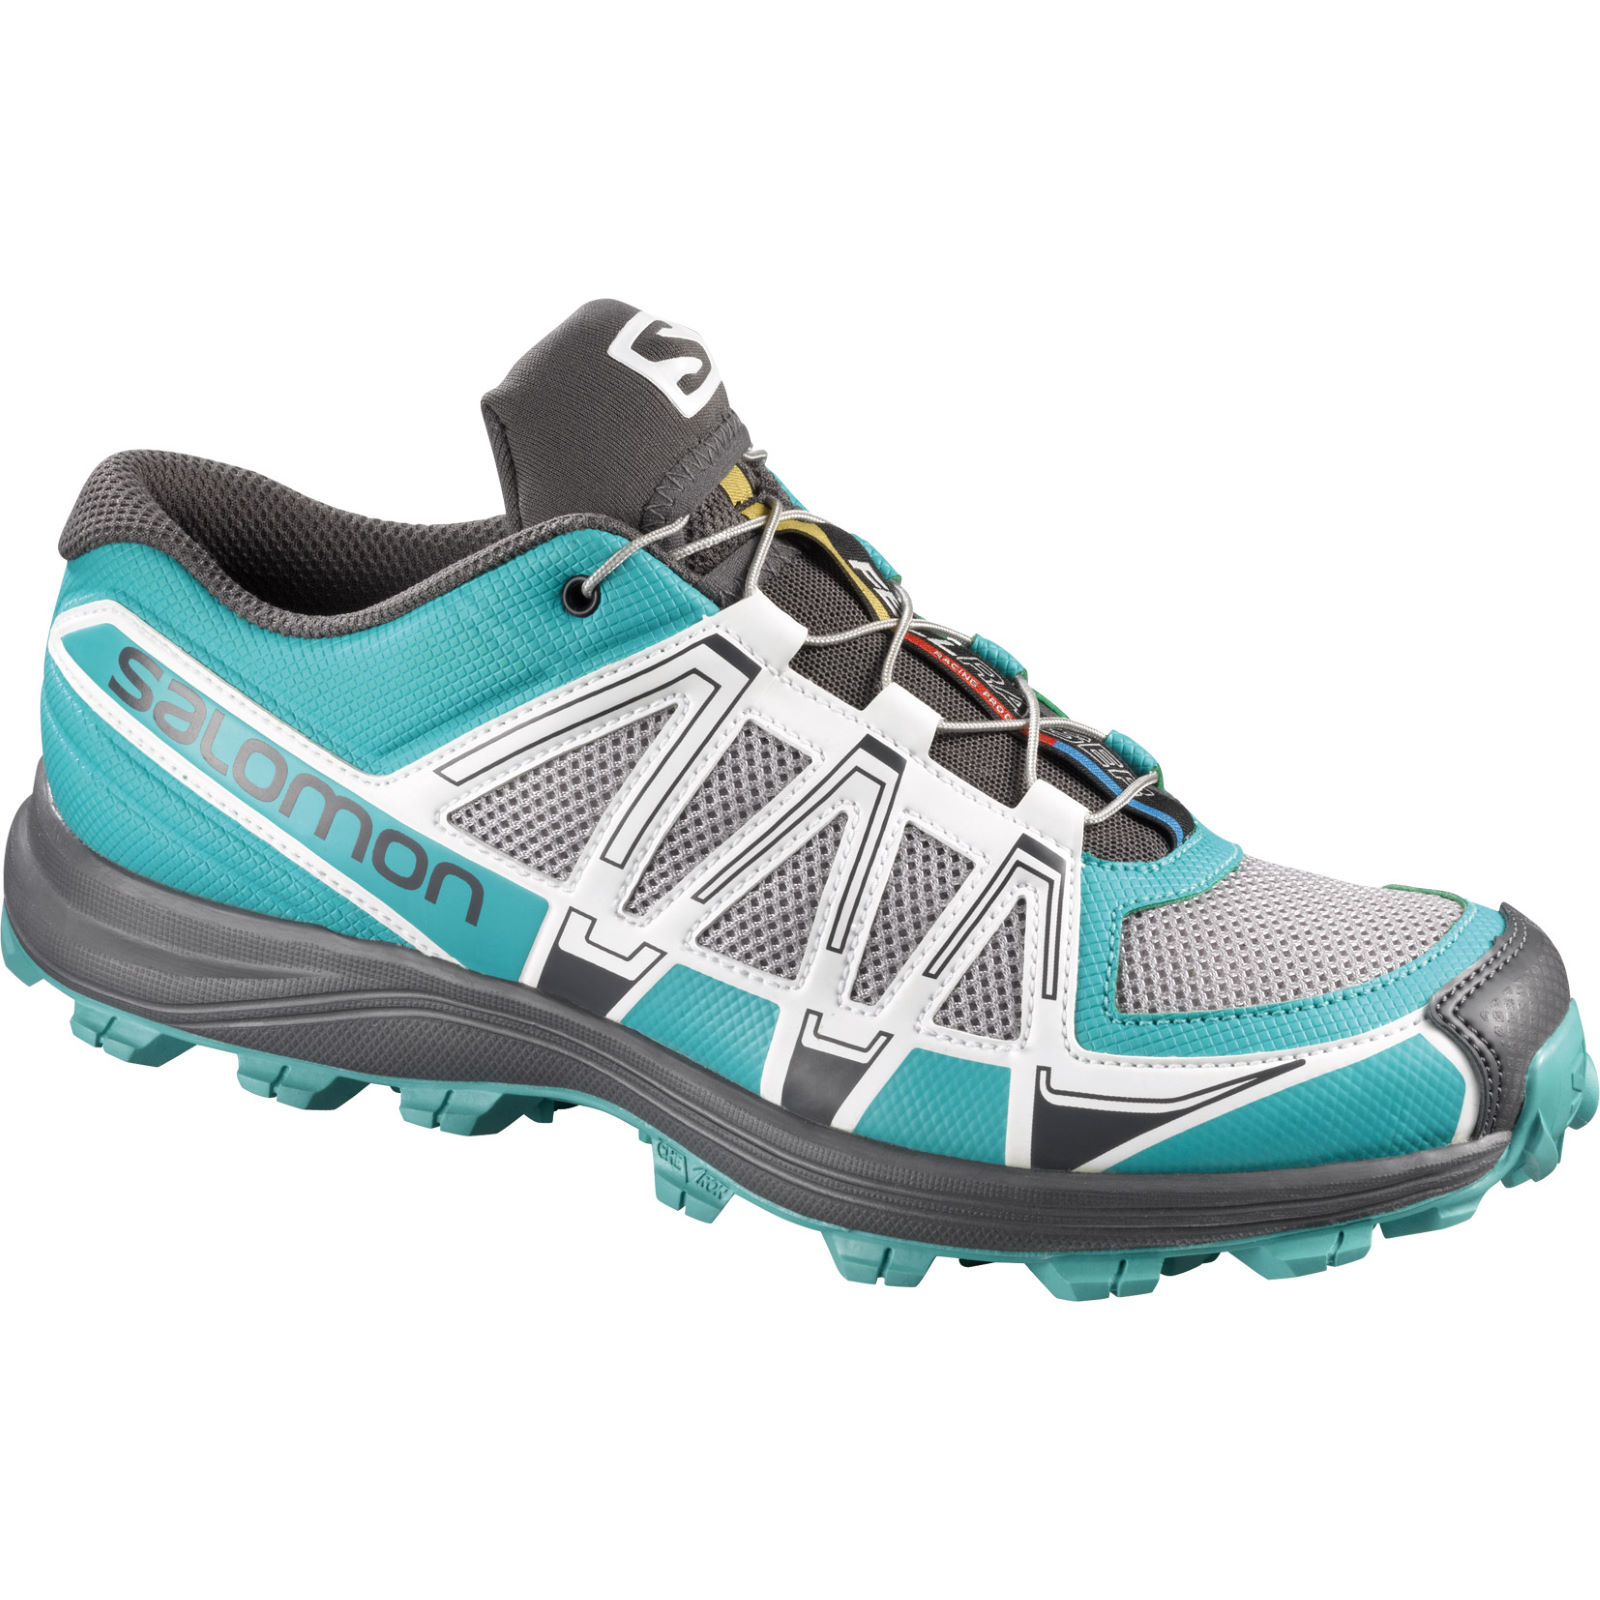 chaussures de running trail salomon women 39 s fellraiser shoes aw14 wiggle france. Black Bedroom Furniture Sets. Home Design Ideas